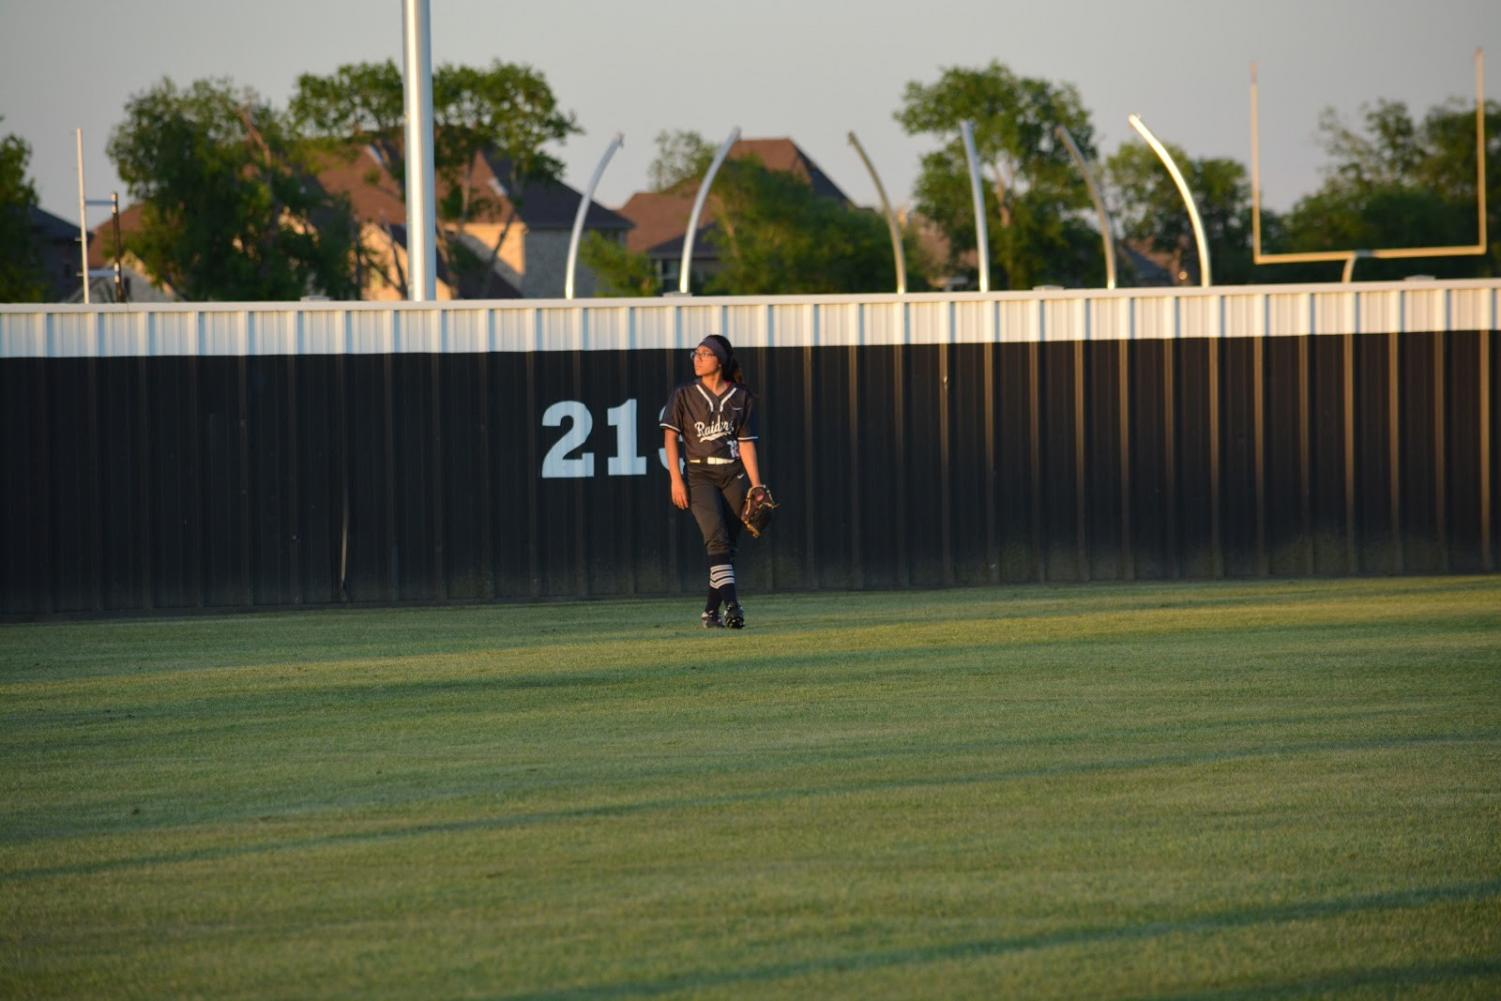 Last+time+%5C%5C+Waiting+to+catch+the+ball+for+the+very+last+time%2C+senior+Victoria+Perez+plays+in+her+last+softball+game+for+the+varsity+team+April+26.+The+team+fell+to+Frisco+Independence+5-4+in+the+second+round+of+the+playoffs.+%E2%80%9CI+was+very+heartbroken+to+see+my+team+lose%2C+but+at+the+same+time%2C+I+don%E2%80%99t+think+we+played+as+well+as+we+could+and+I+hope+the+upcoming+varsity+team+does+better%2C%E2%80%9D+Perez+said.